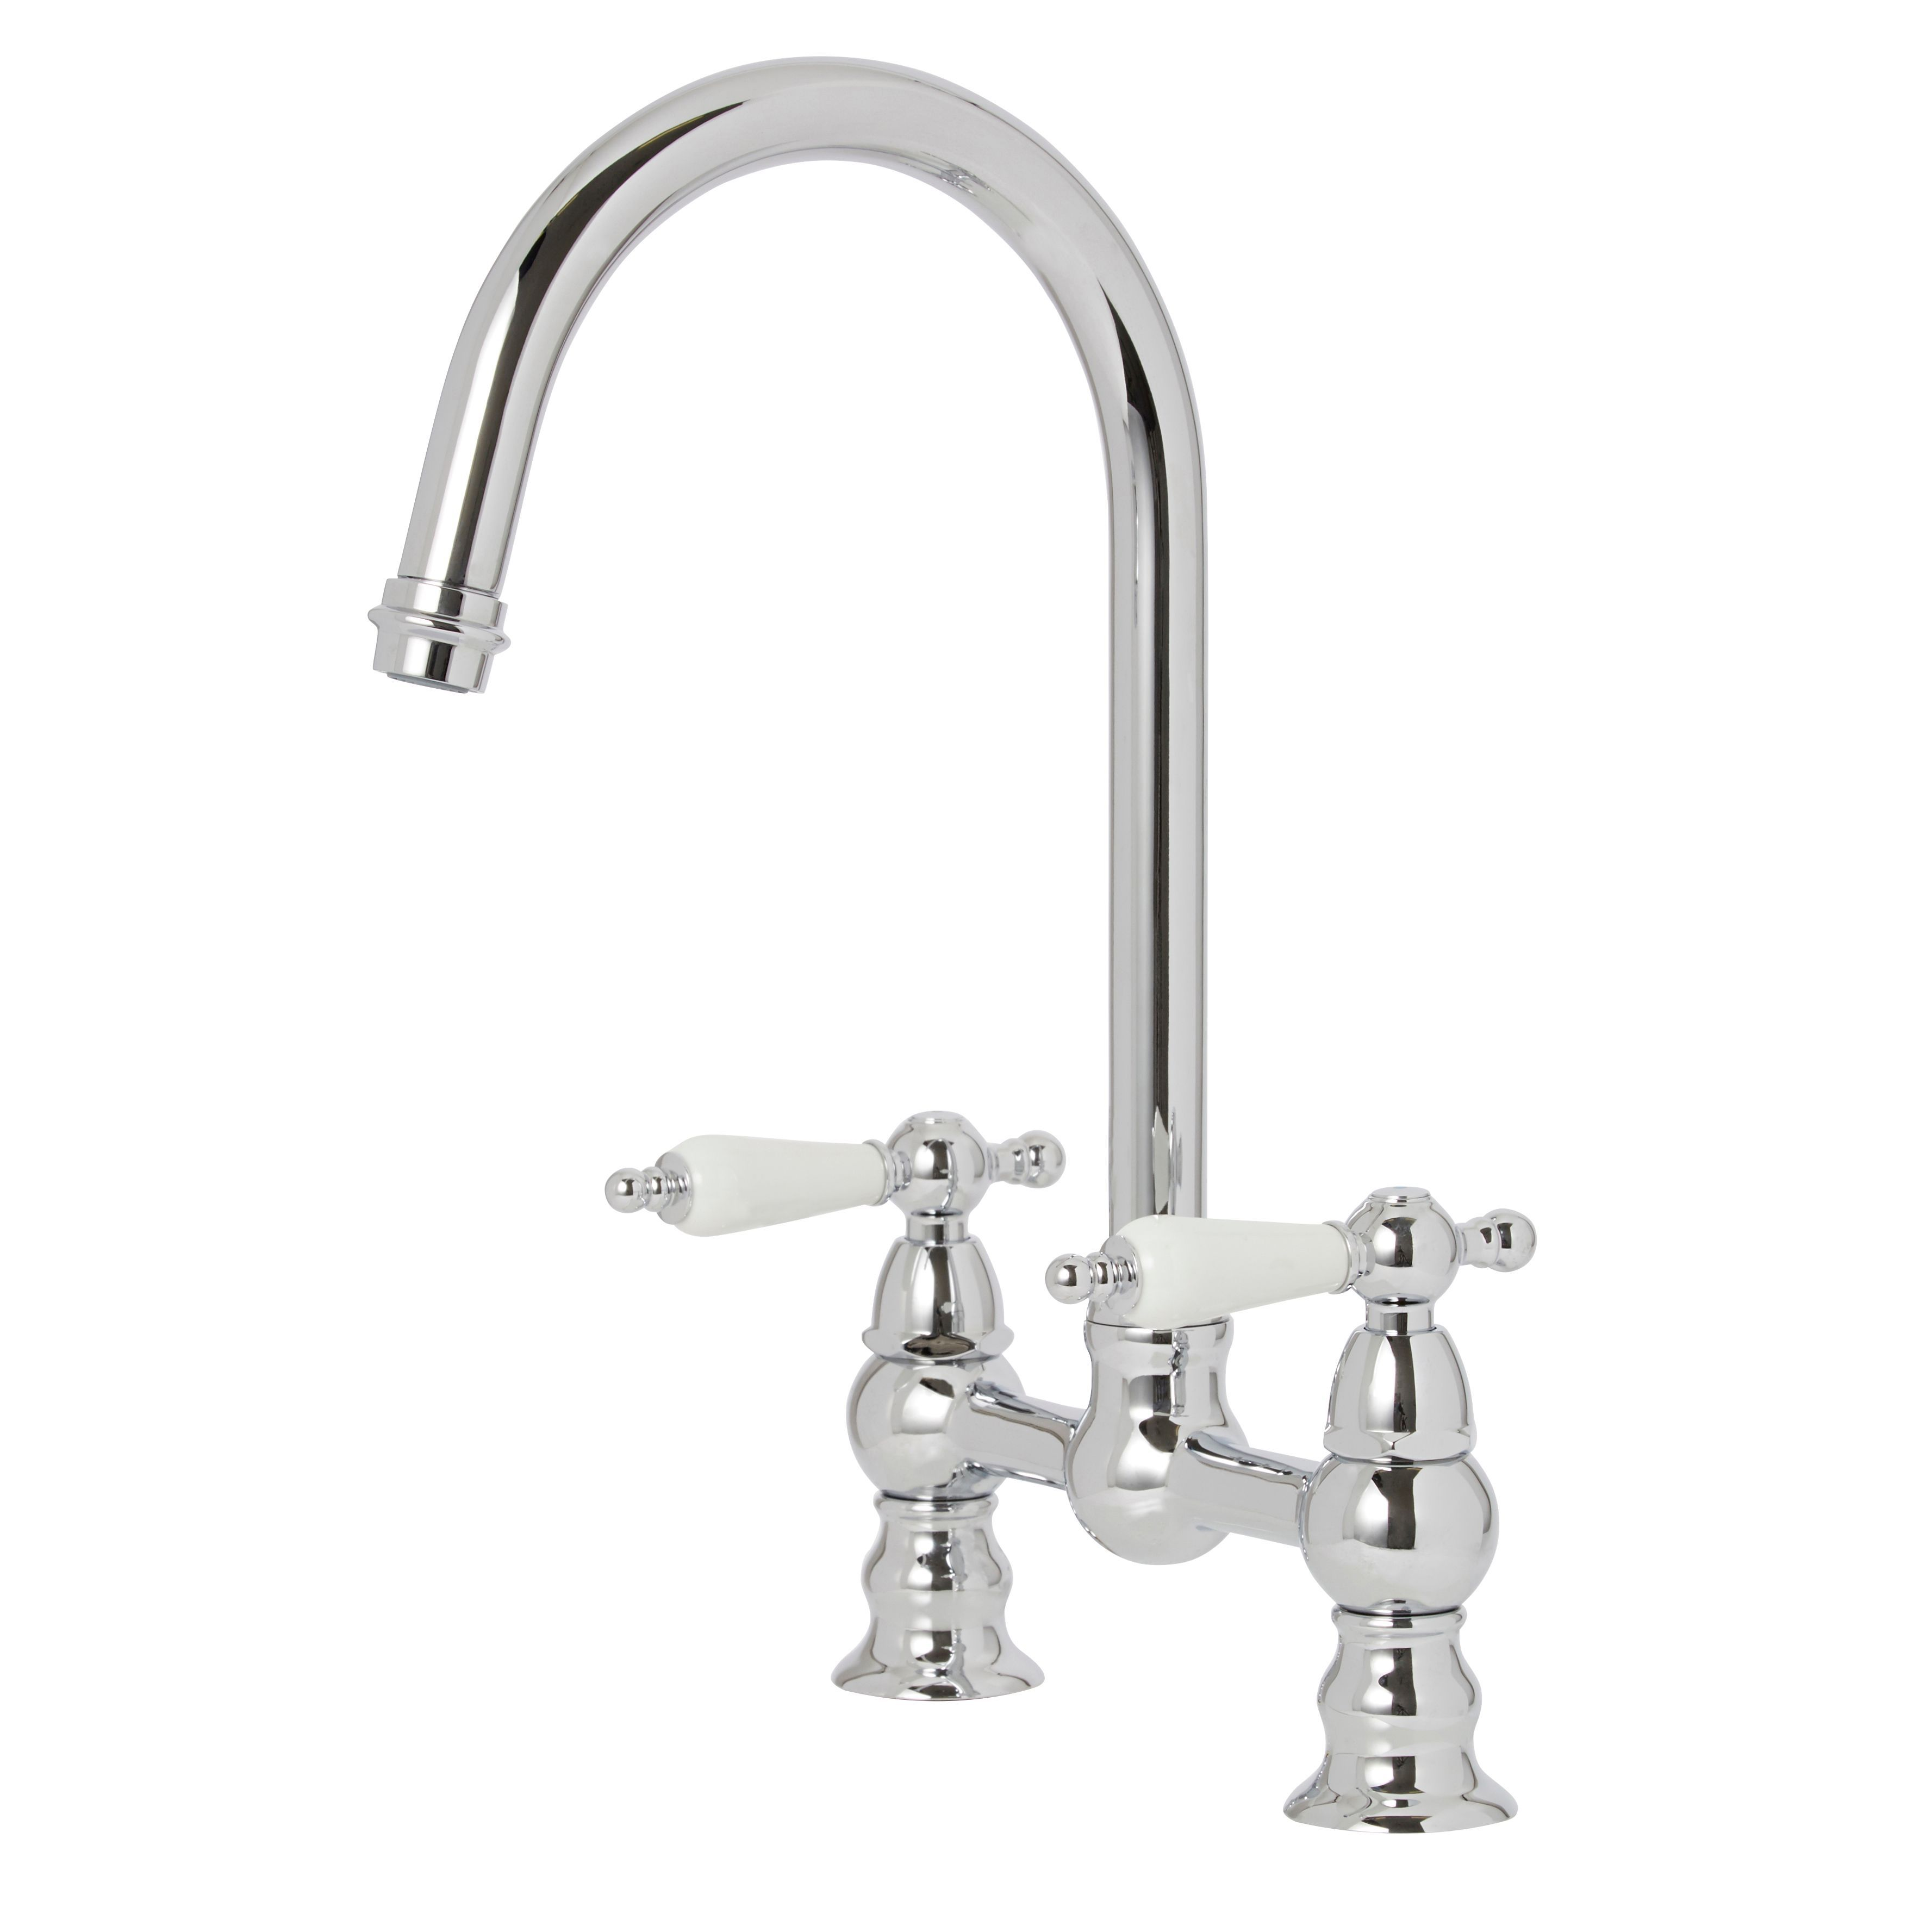 Bq Kitchen Bridge Tap